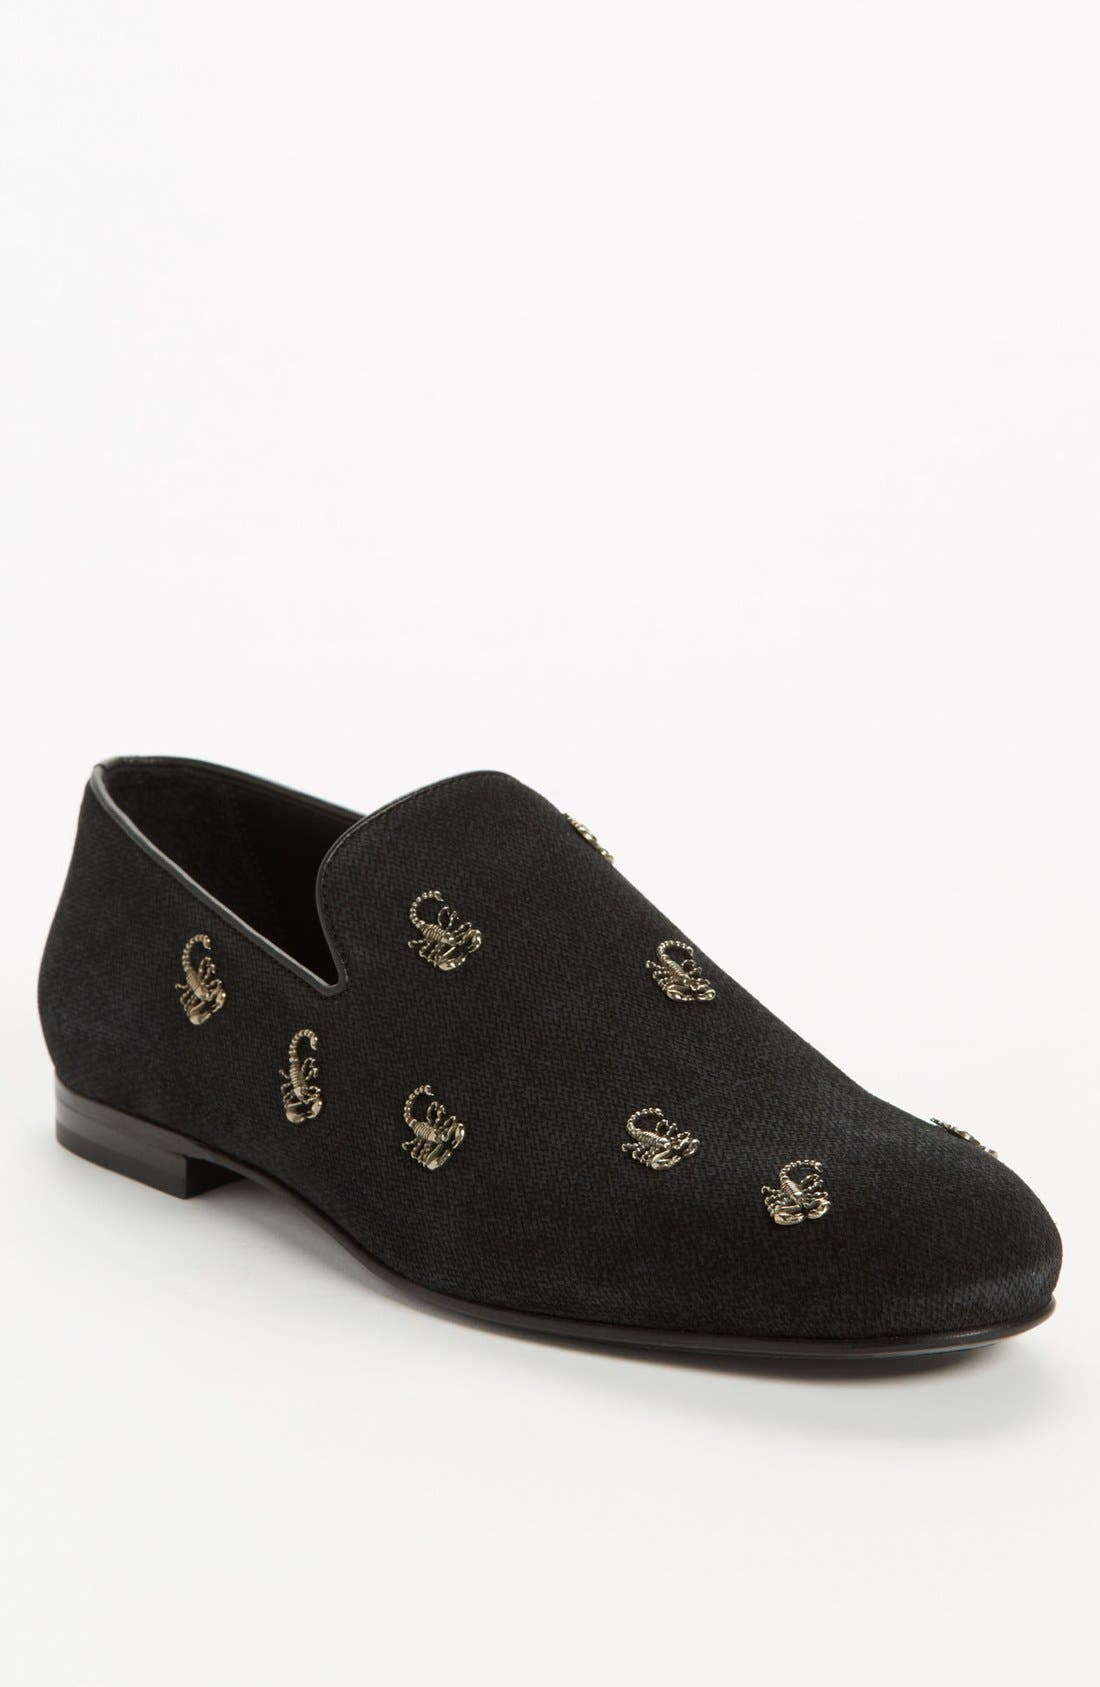 Alternate Image 1 Selected - Jimmy Choo 'Sloane' Scorpion Studded Loafer